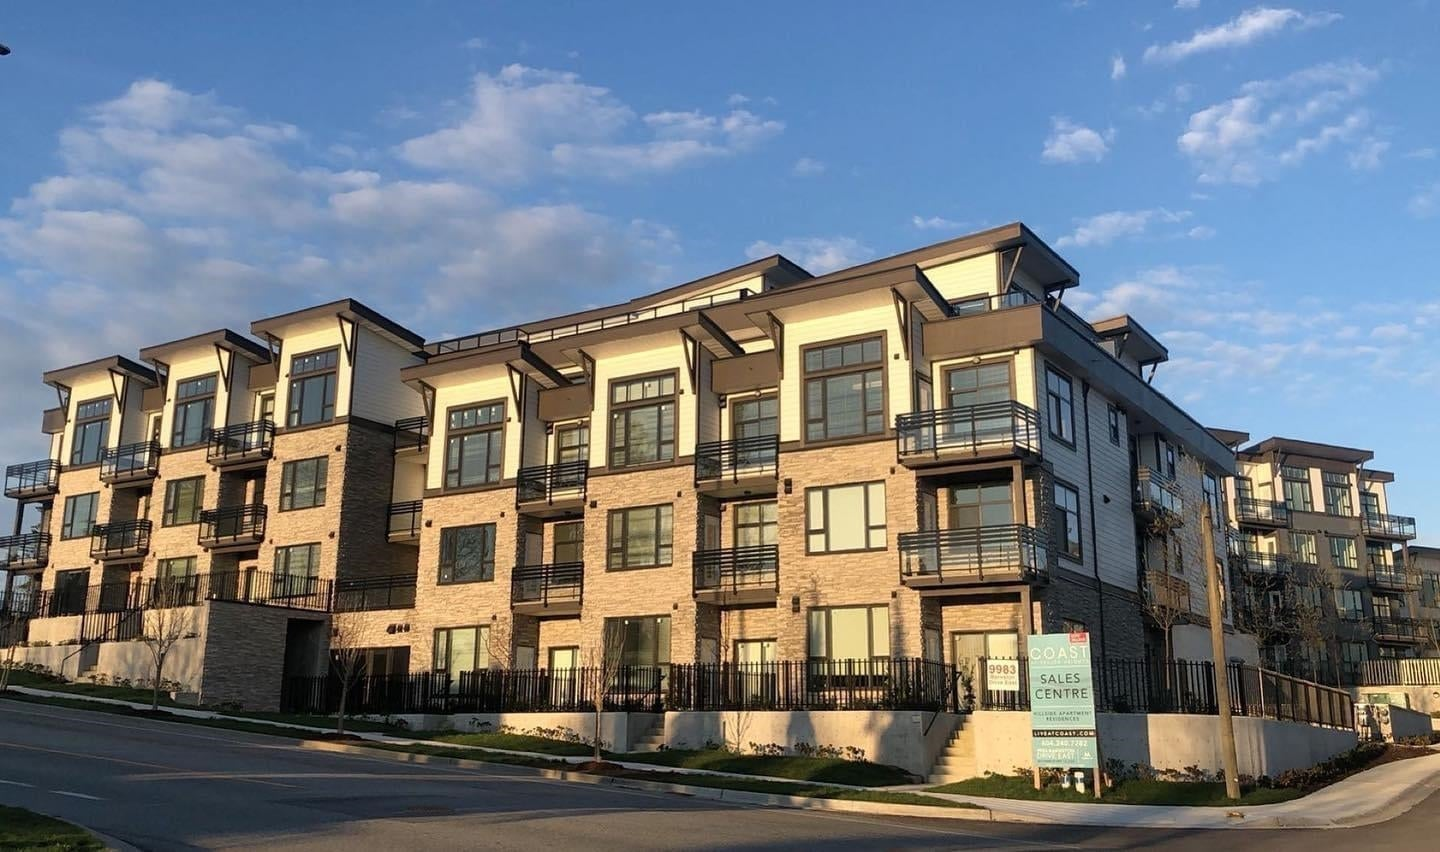 302 9983 BARNSTON DRIVE - Fraser Heights Apartment/Condo for sale, 1 Bedroom (R2618823) - #9